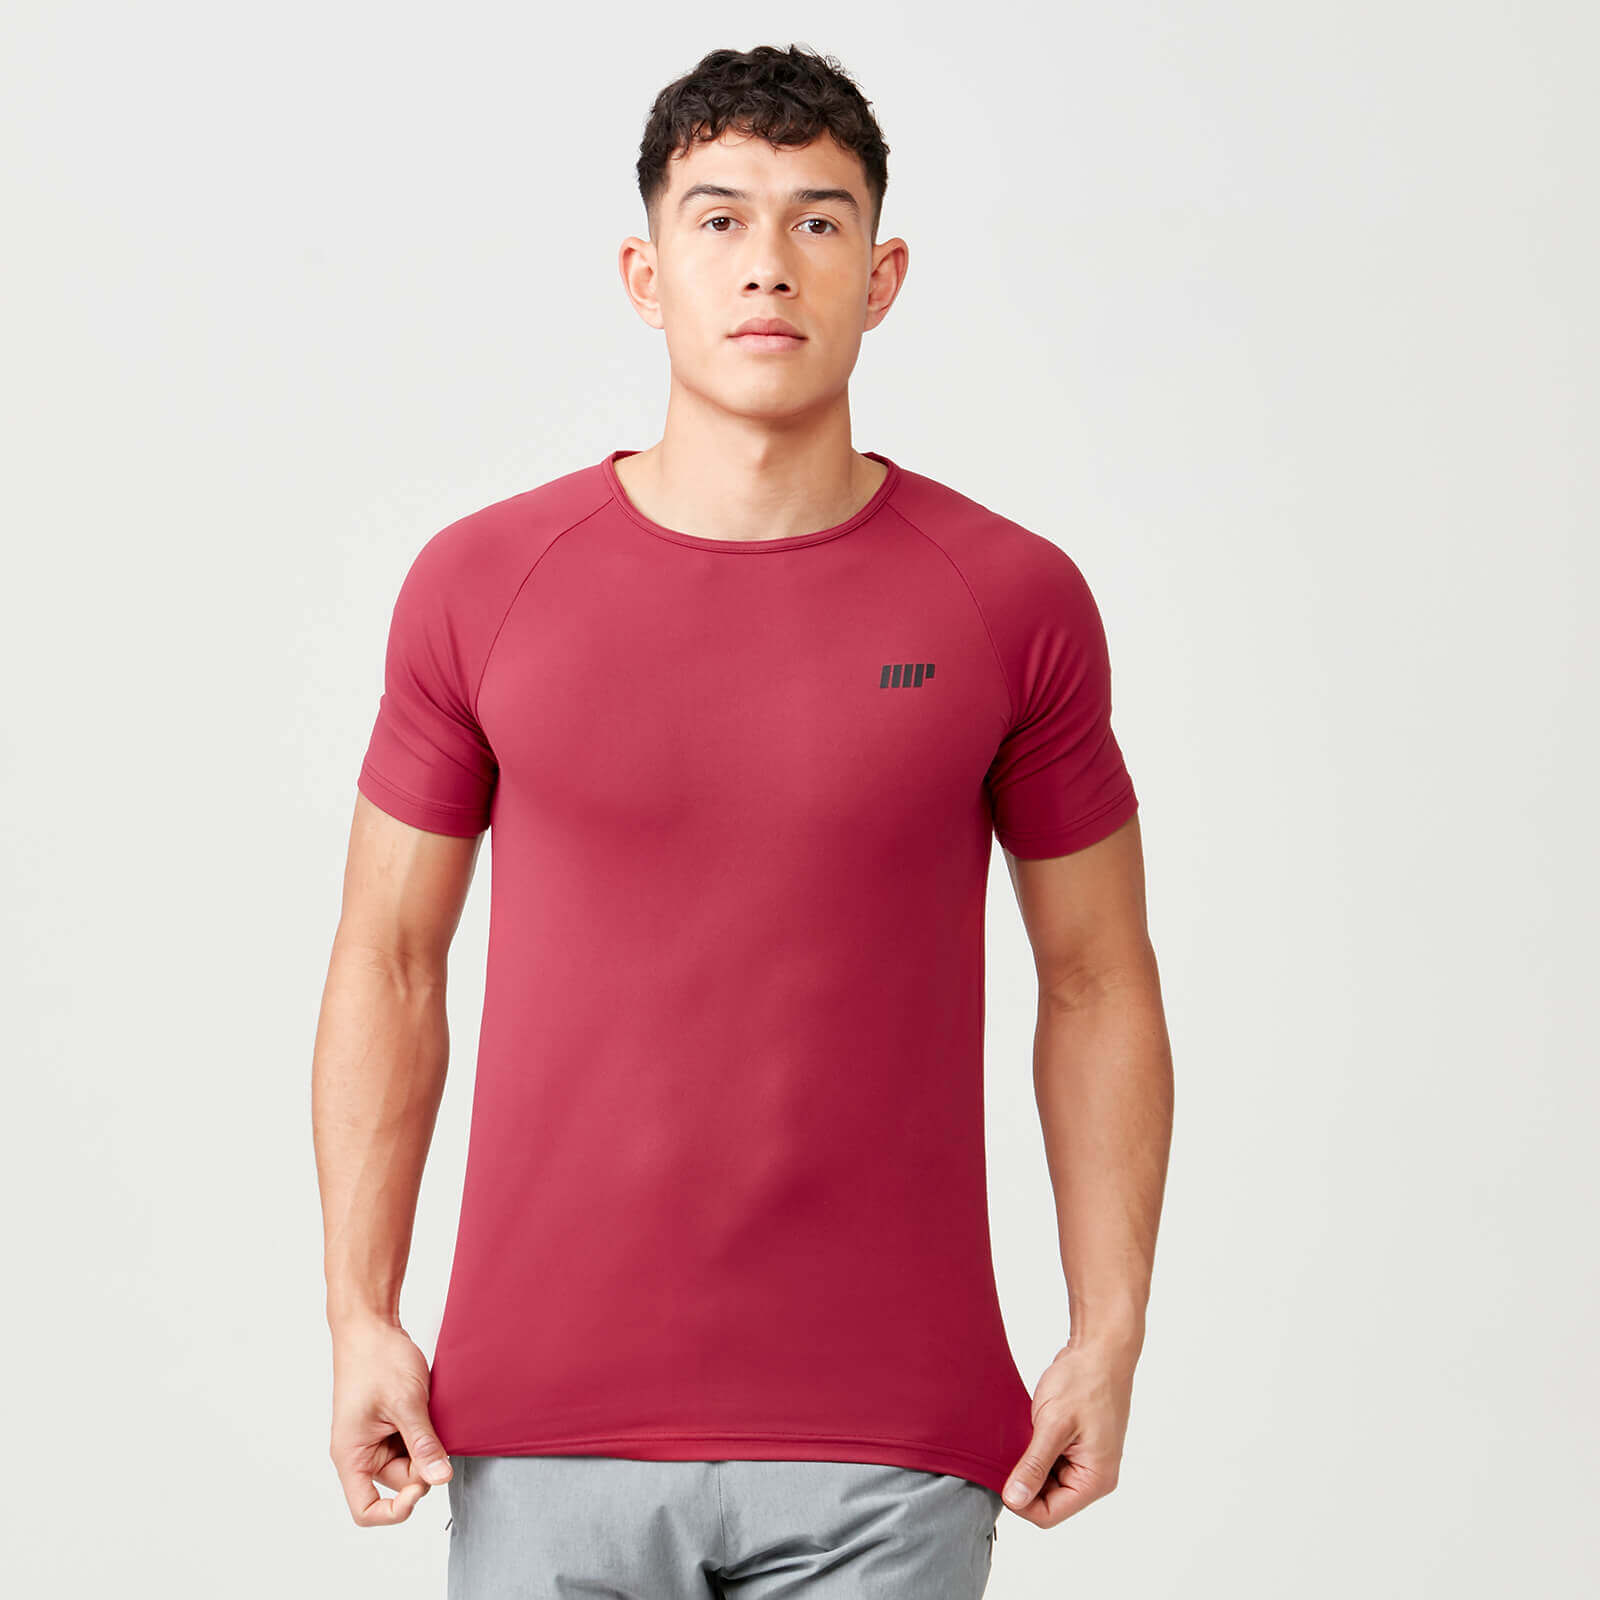 Myprotein Dry Tech Infinity T-Shirt